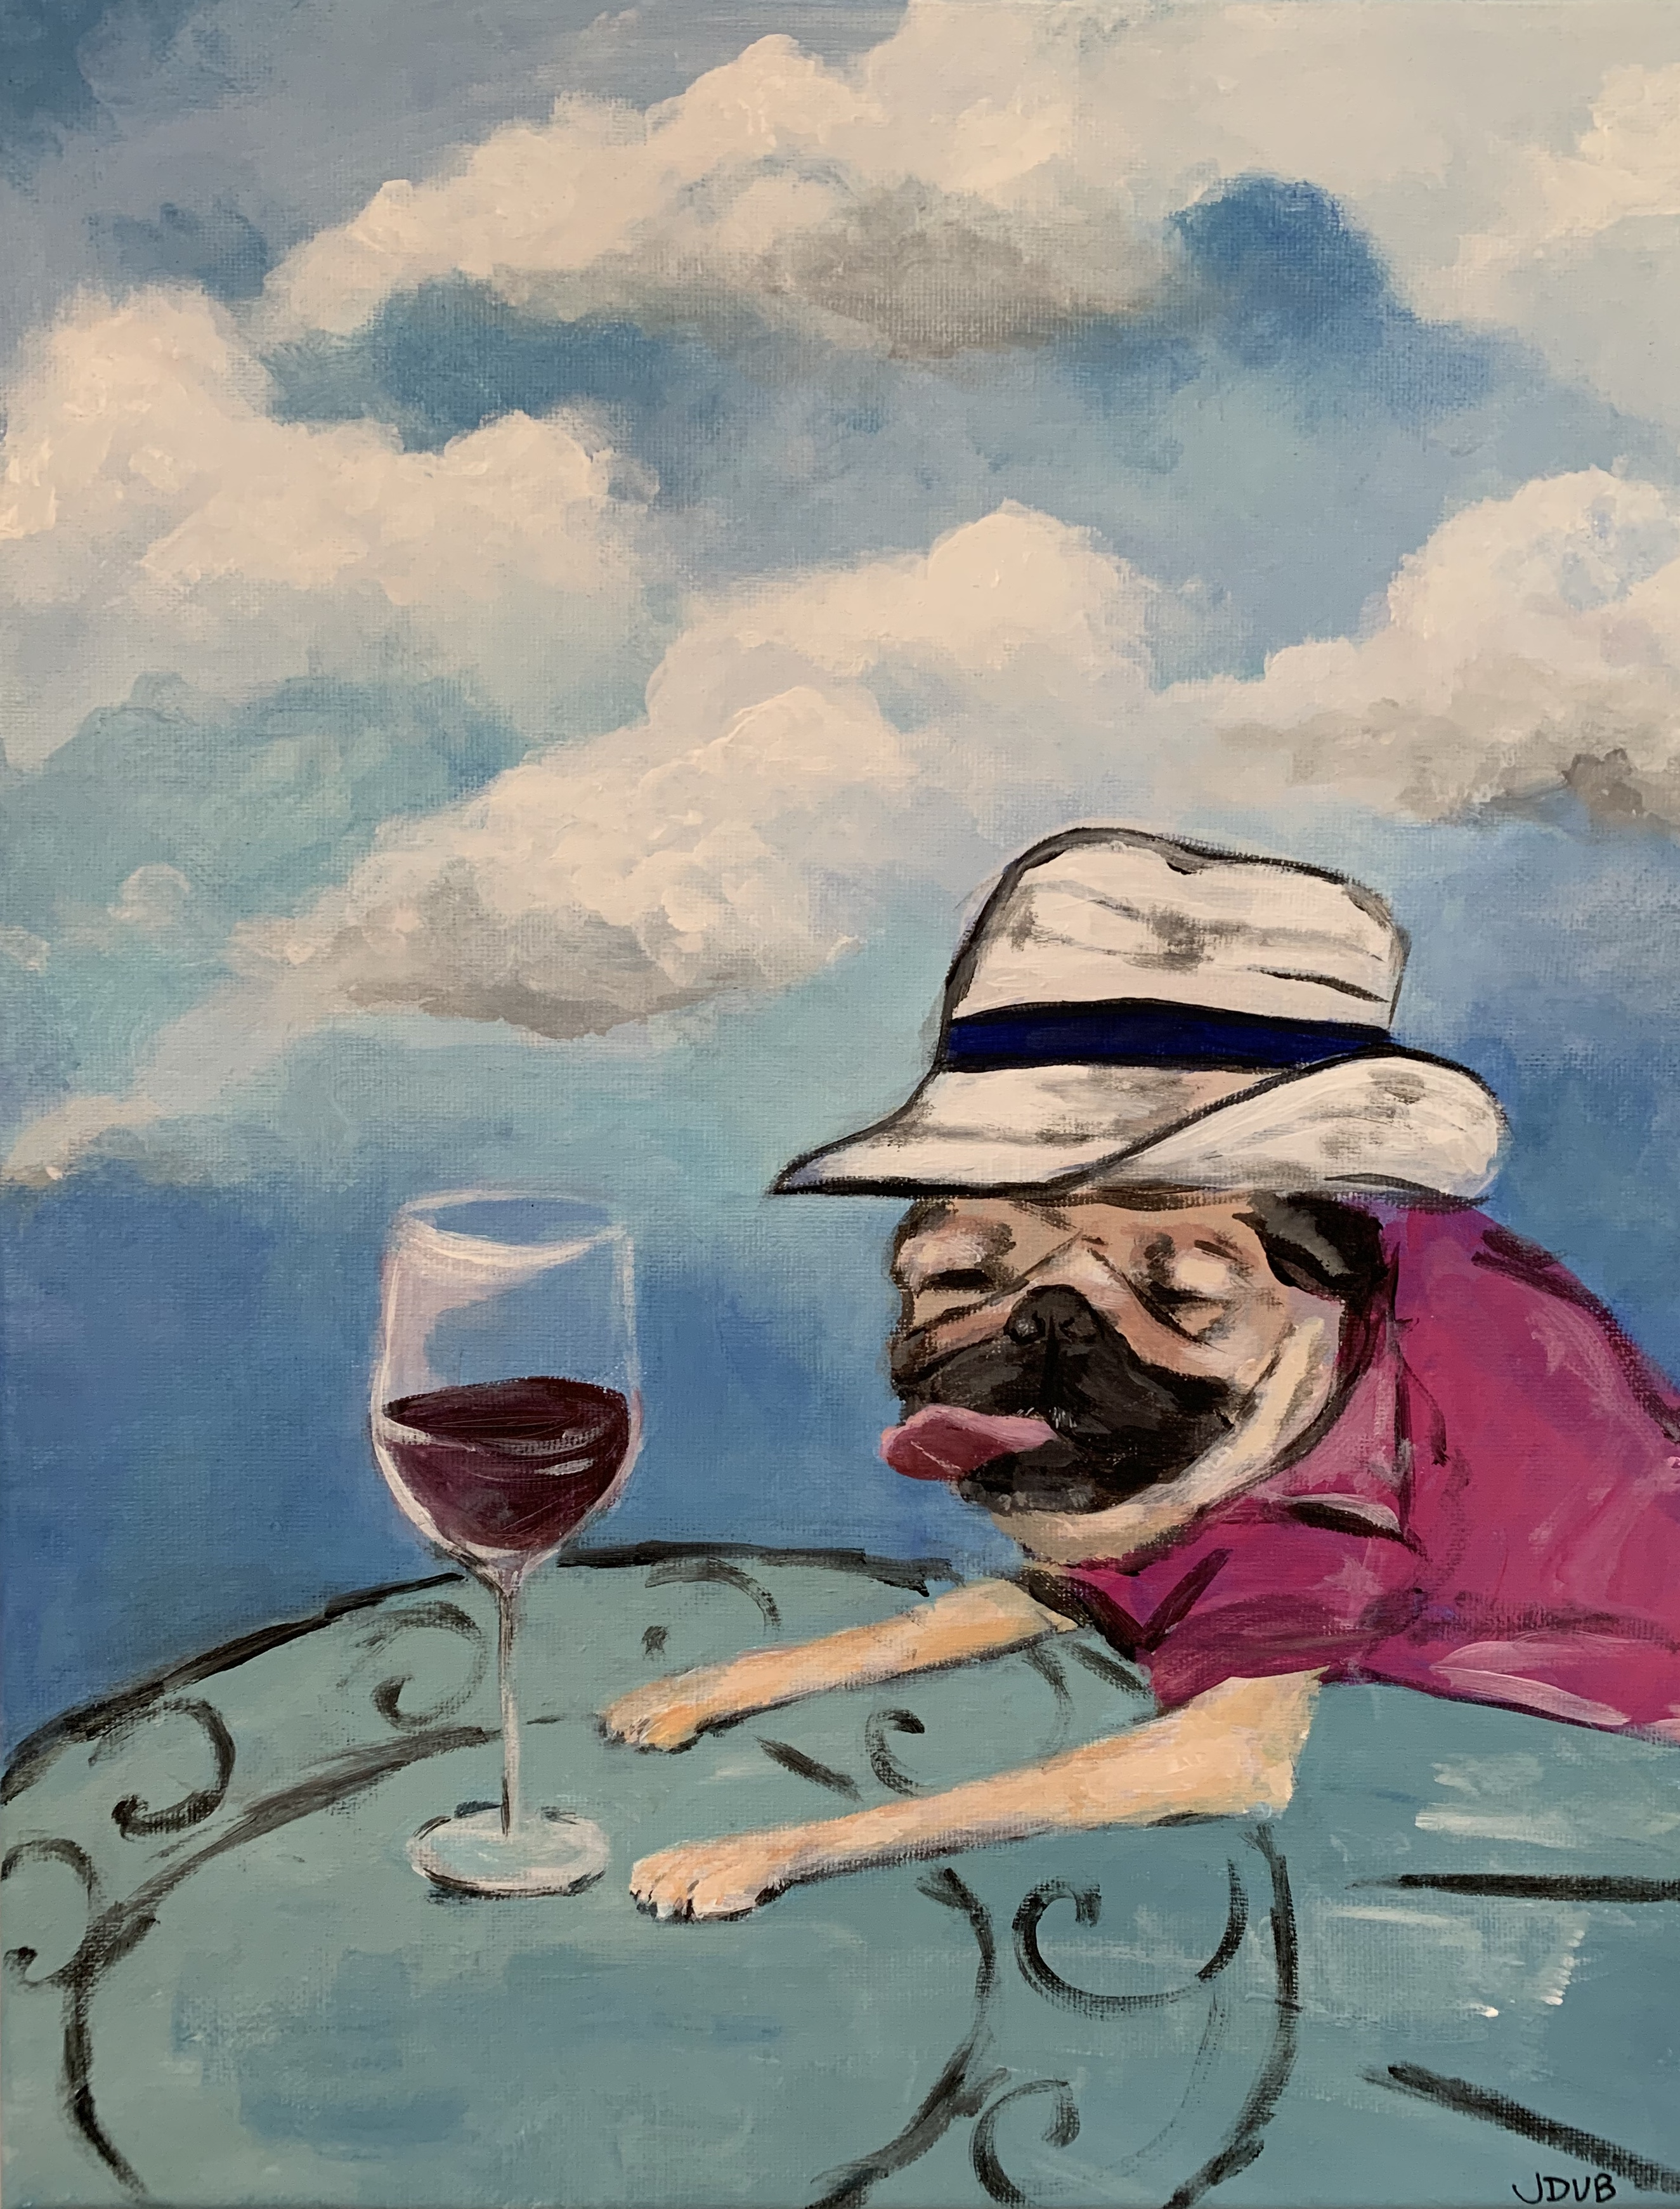 Doug the Pug retired with wine